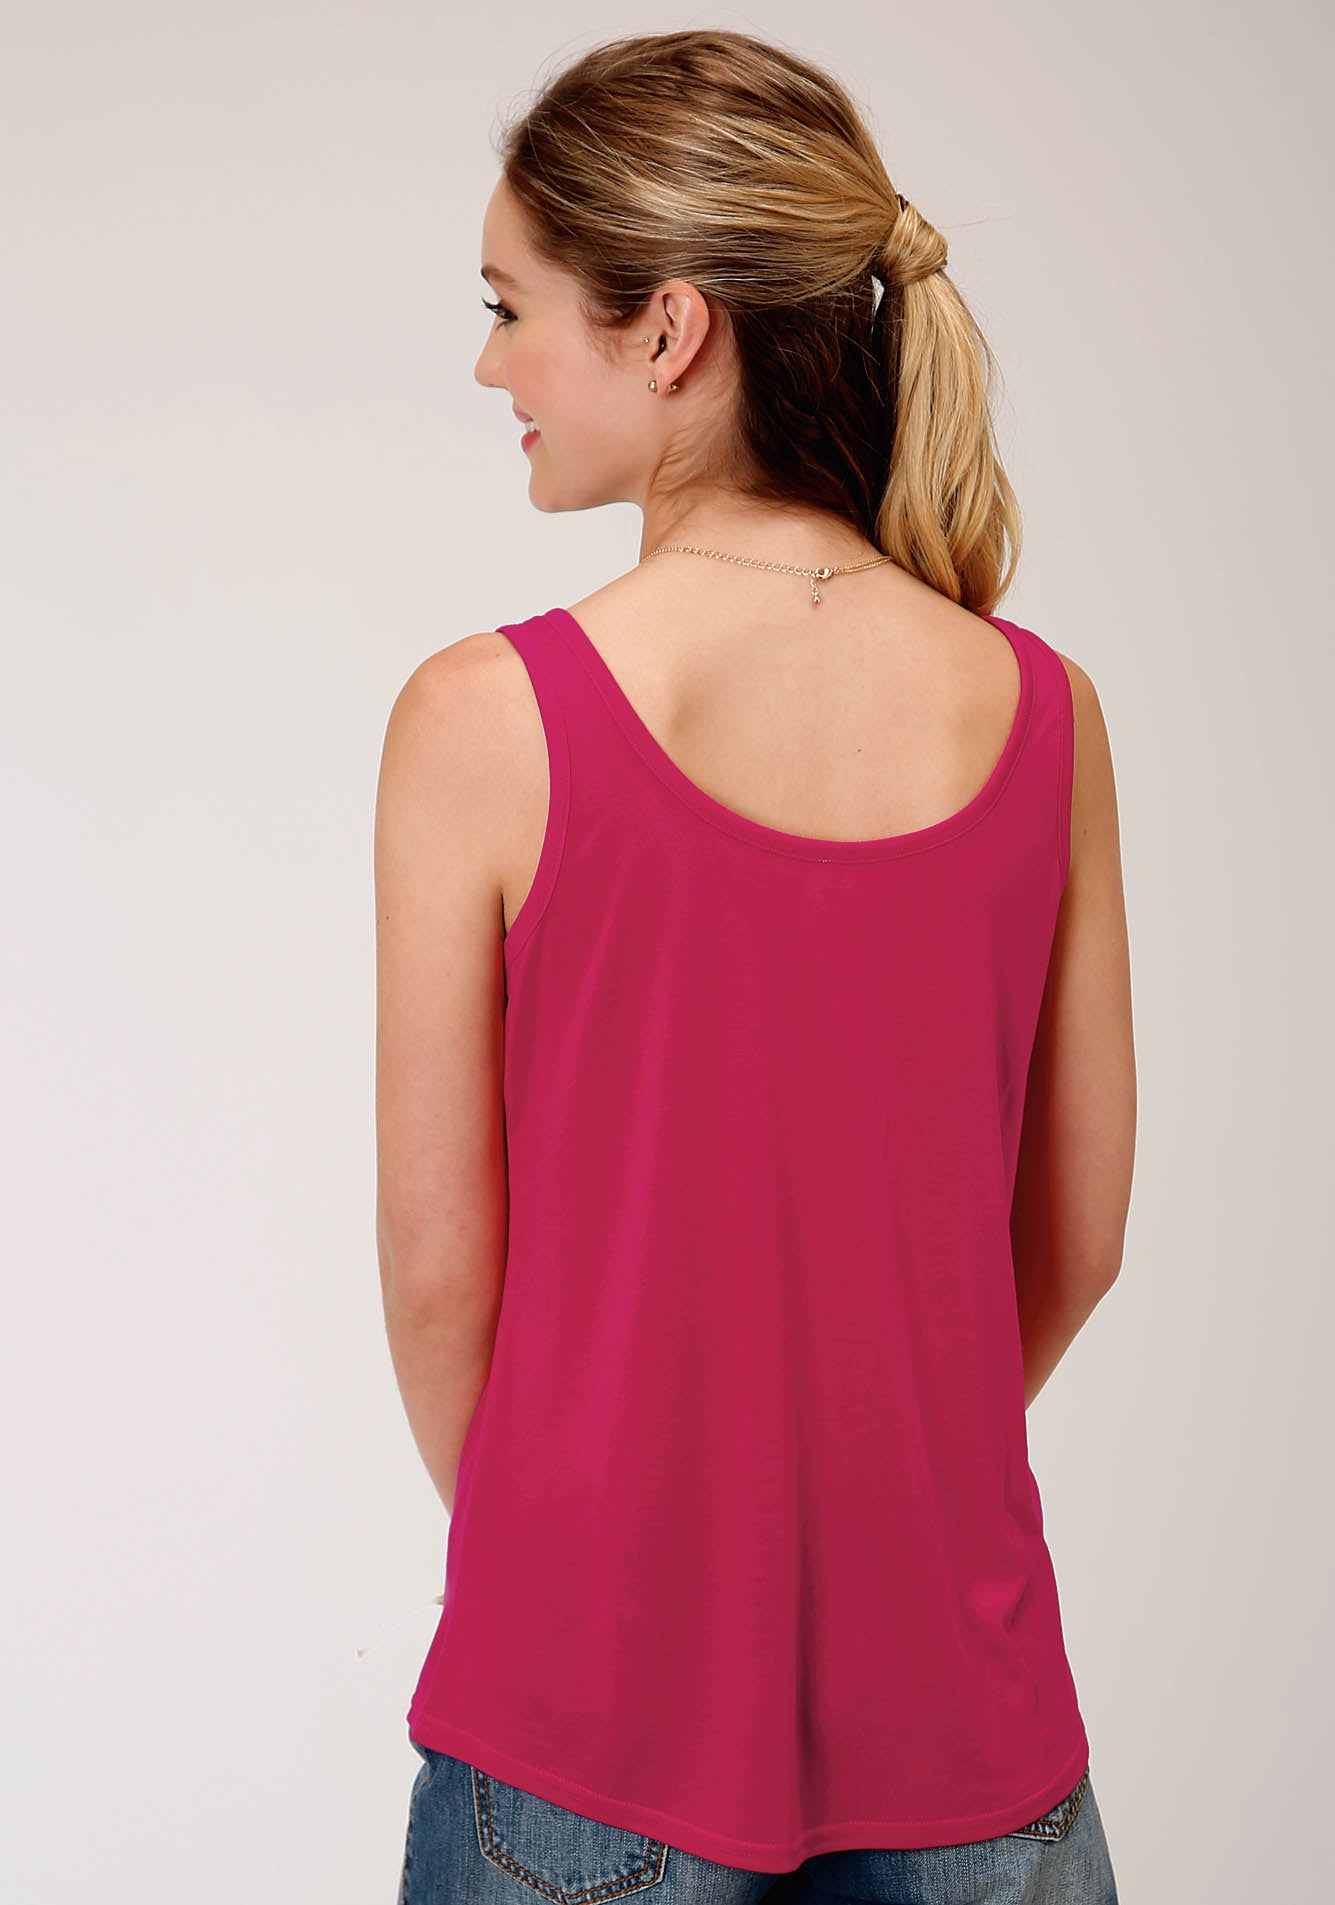 ROPER WOMENS PINK 00244 POLY RAYON SWING TANK FIVE STAR COLLECTION- SUMMER I LONG SLEEVE